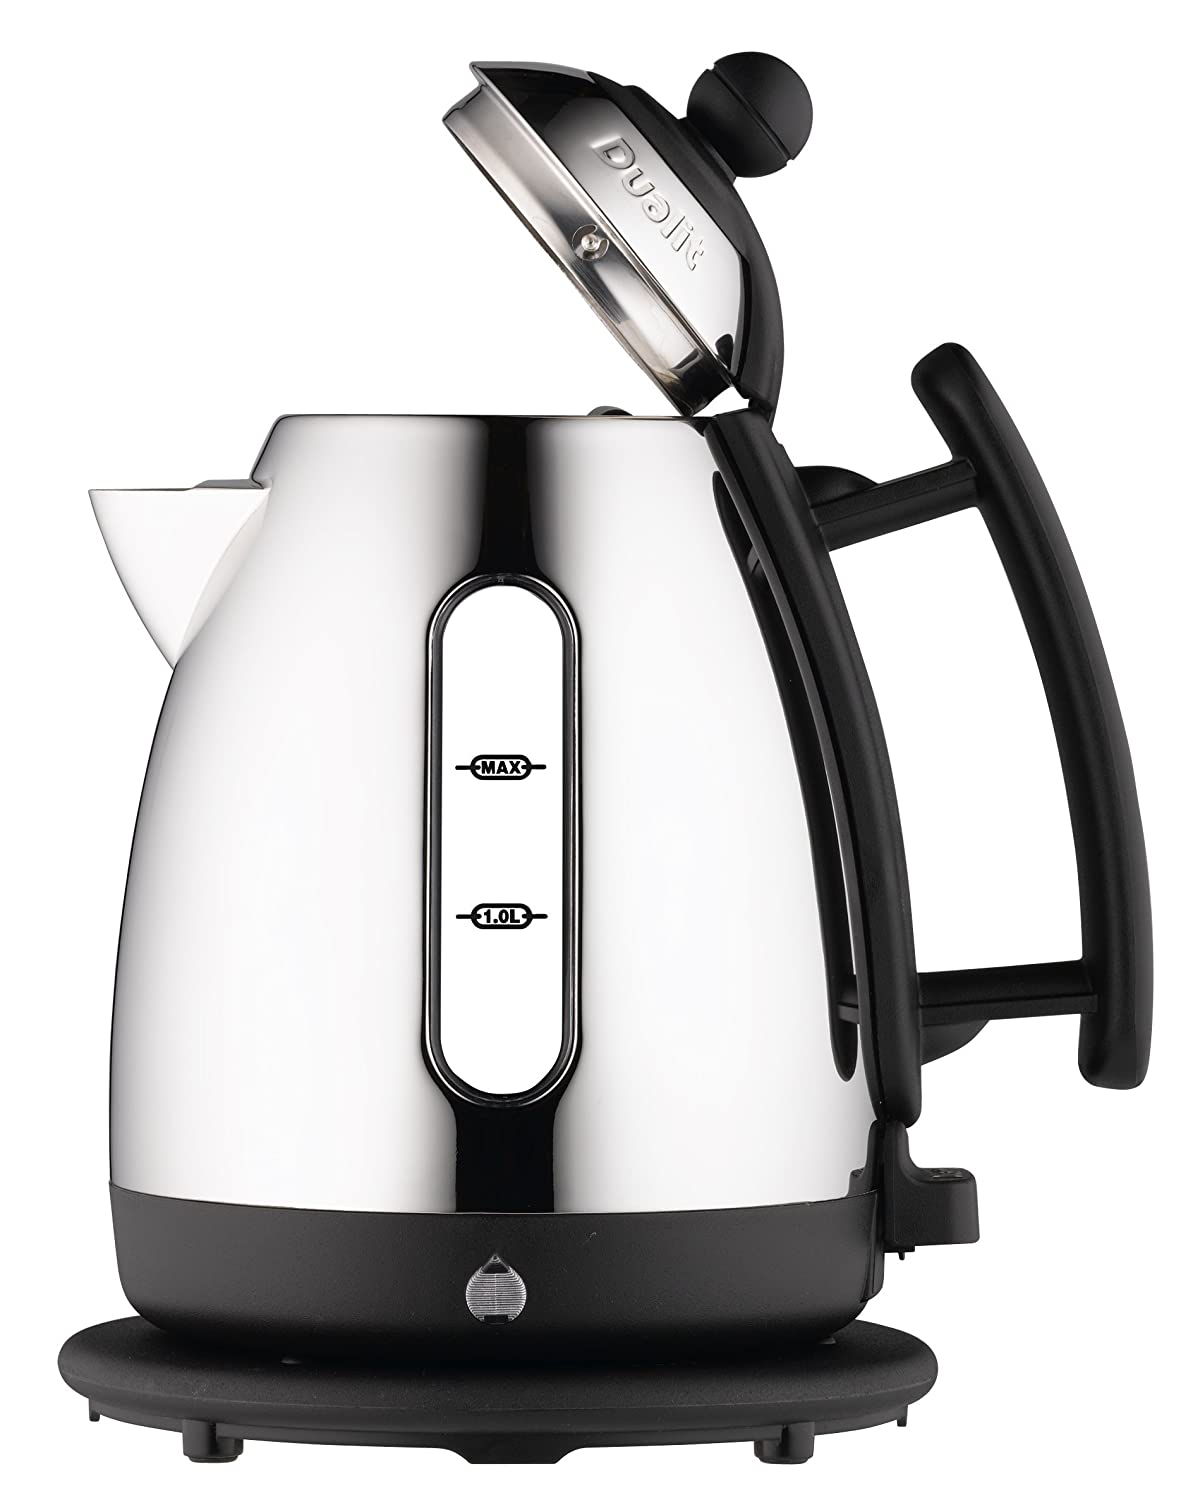 Dualit 72955 Design Series Kettle Amazonca Home Kitchen